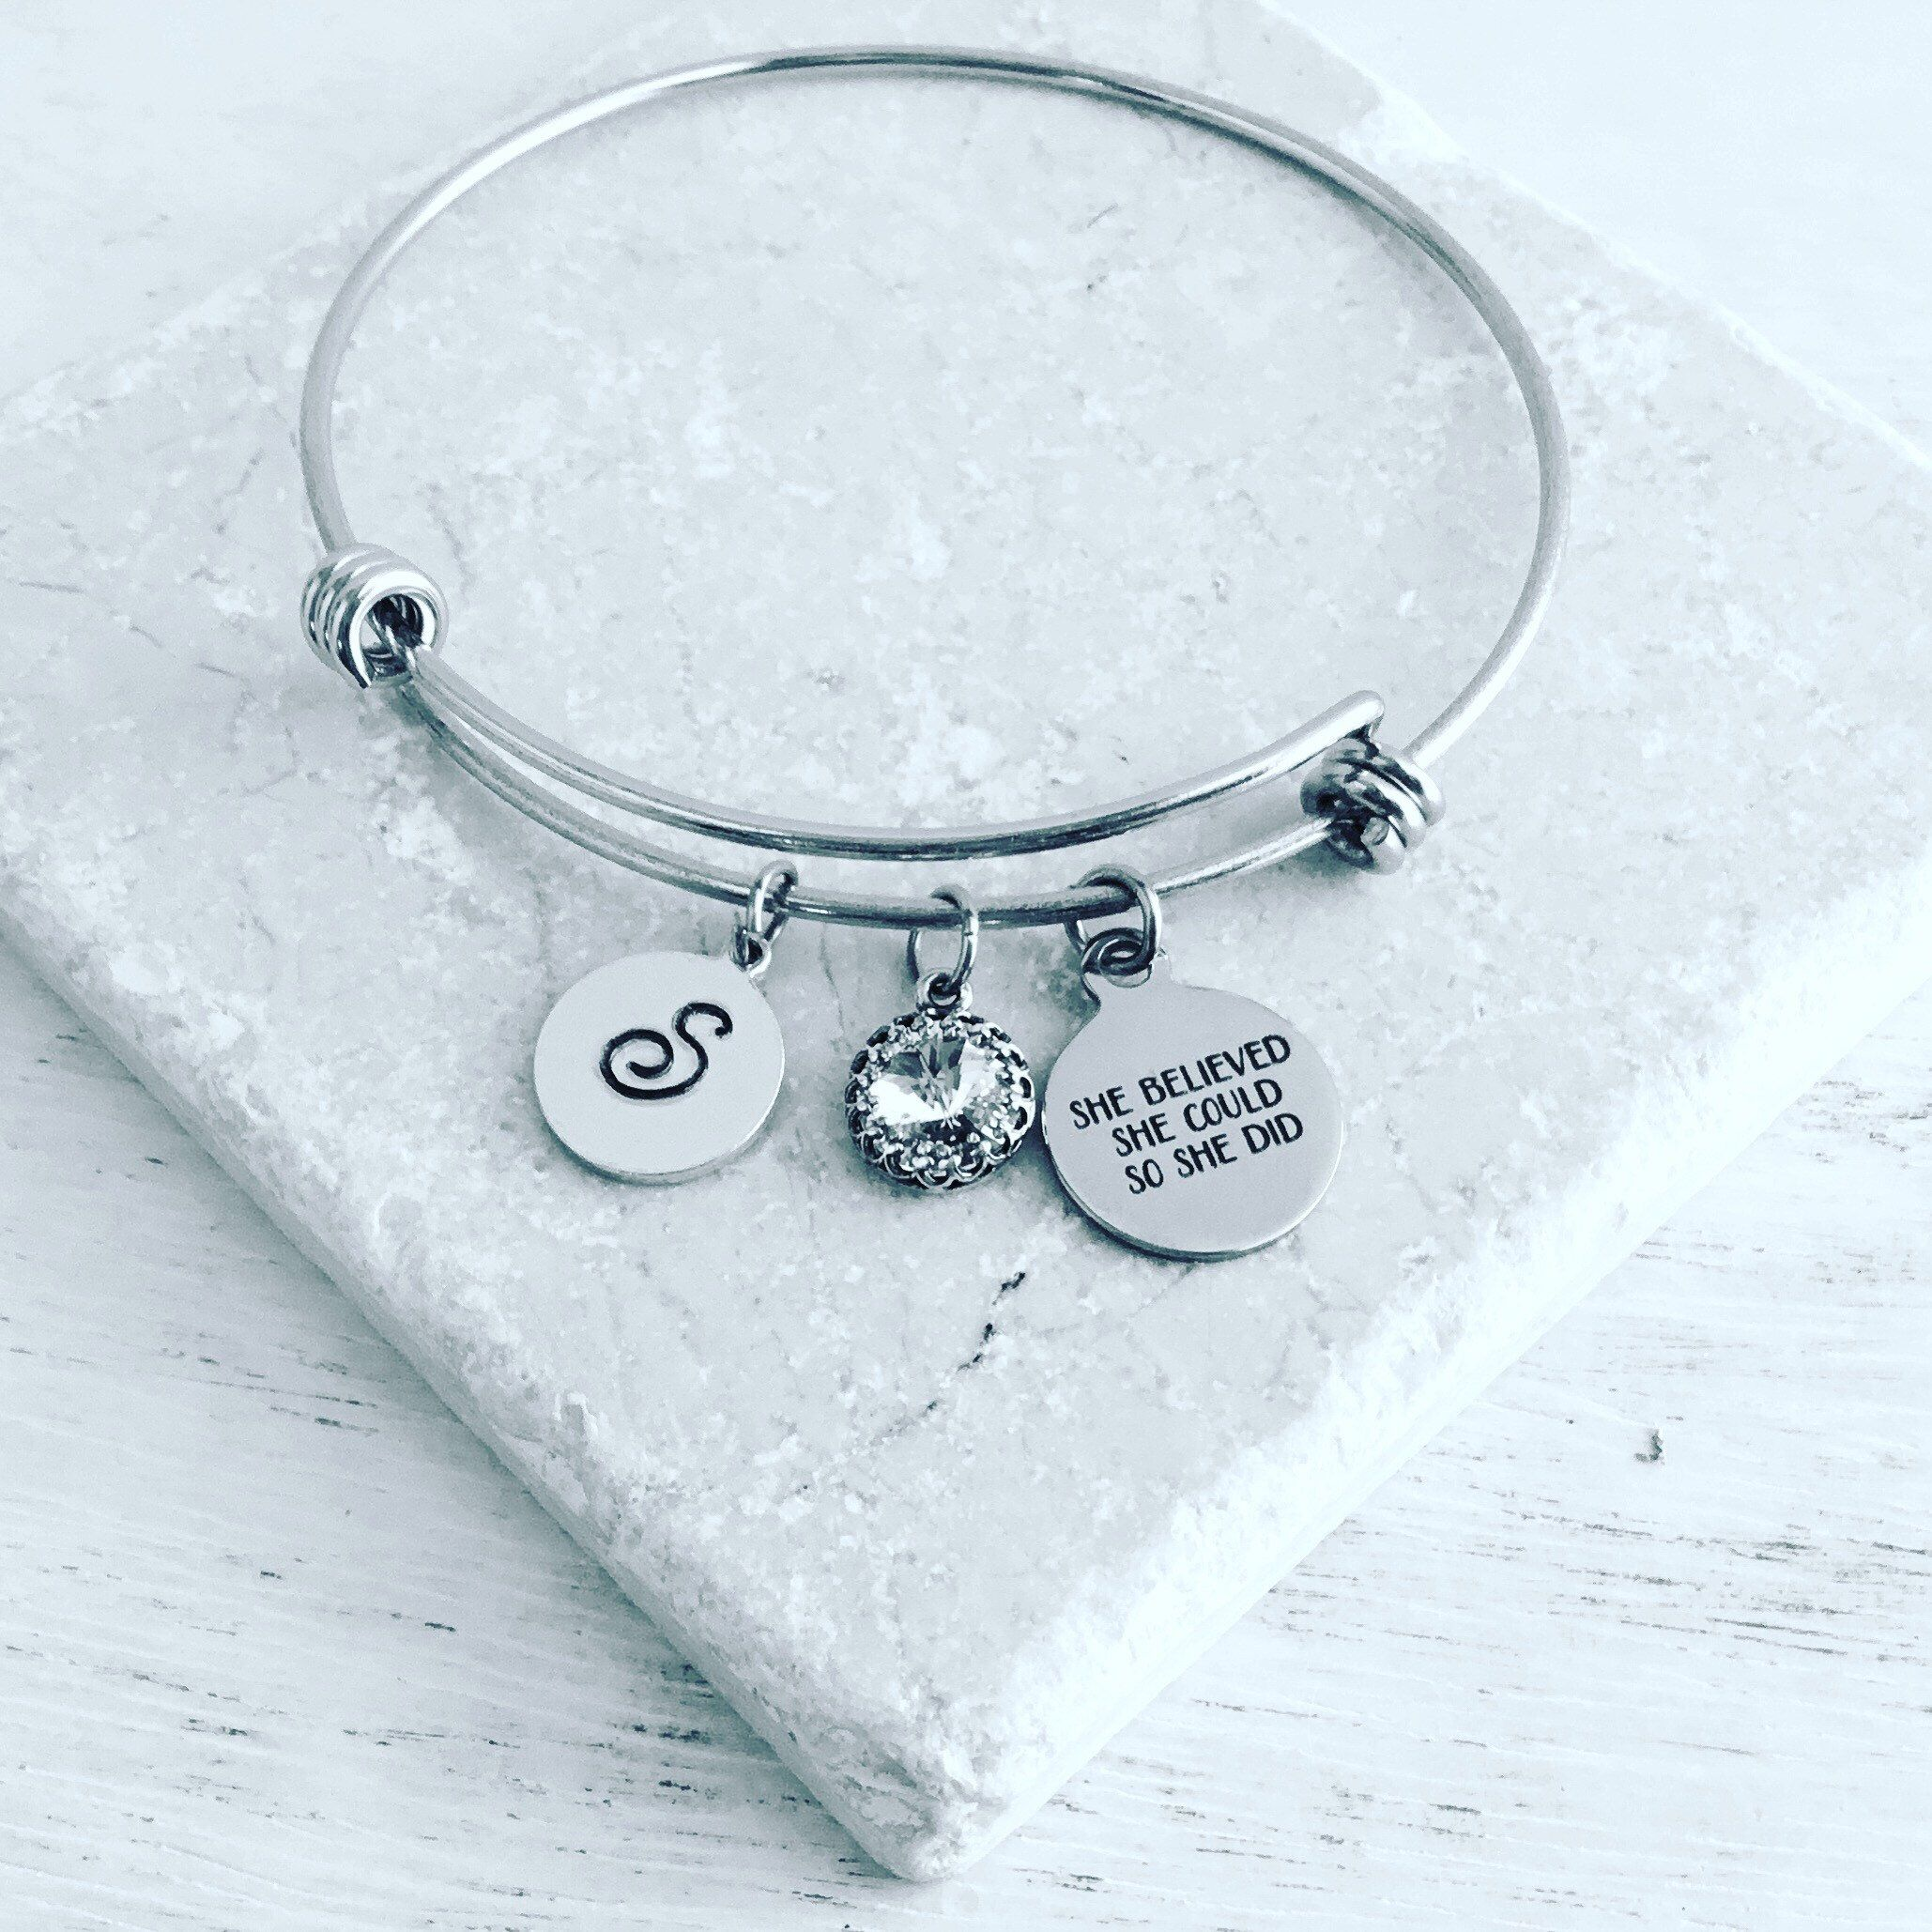 add to charm bracelet or necklace motivational inspirational gift for her sterling silver charm She believed she could so she did charm